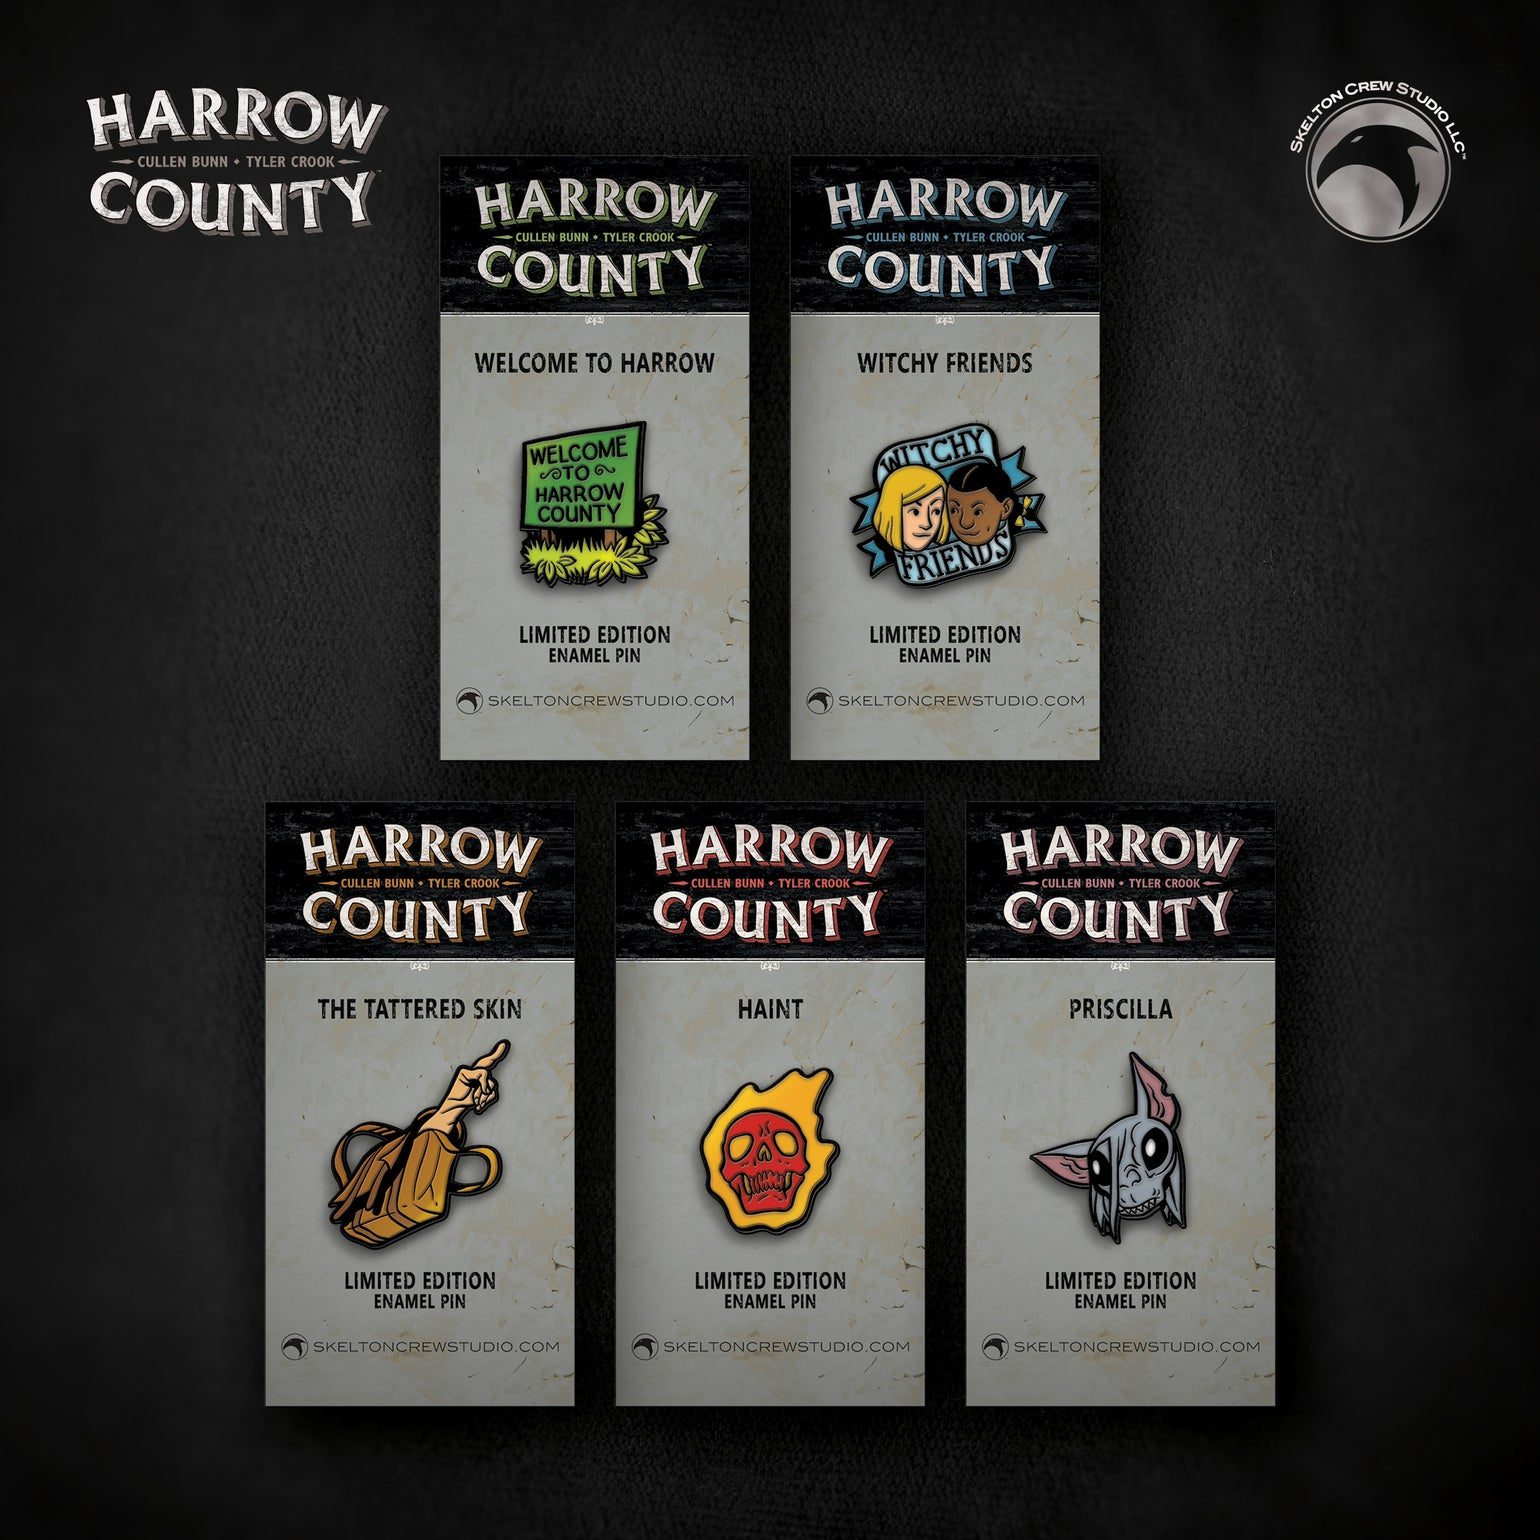 Image of Harrow County: Haint, Priscilla, Witchy Friends, Welcome Sign & Tattered Skin set!